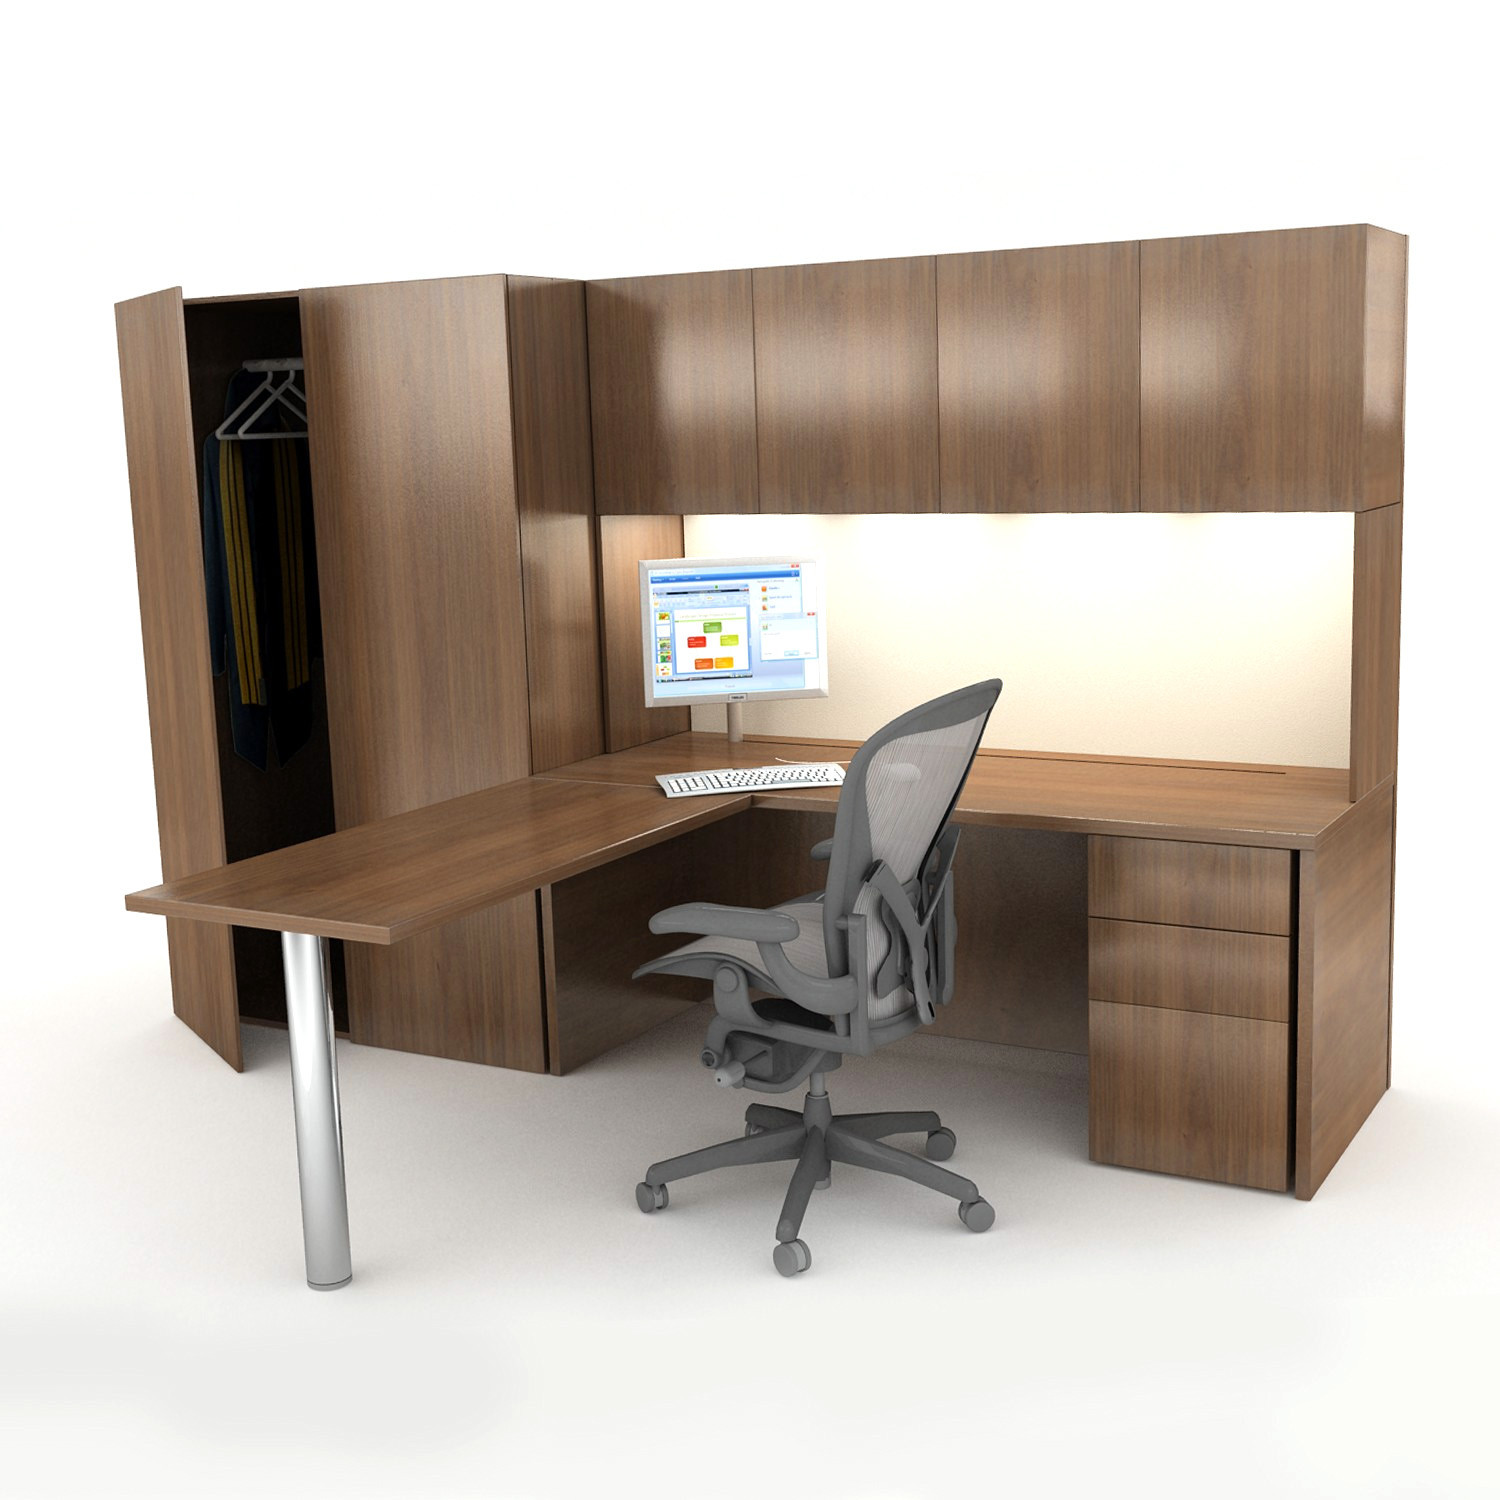 Bespoke Walnur Workwall Desk and Storage